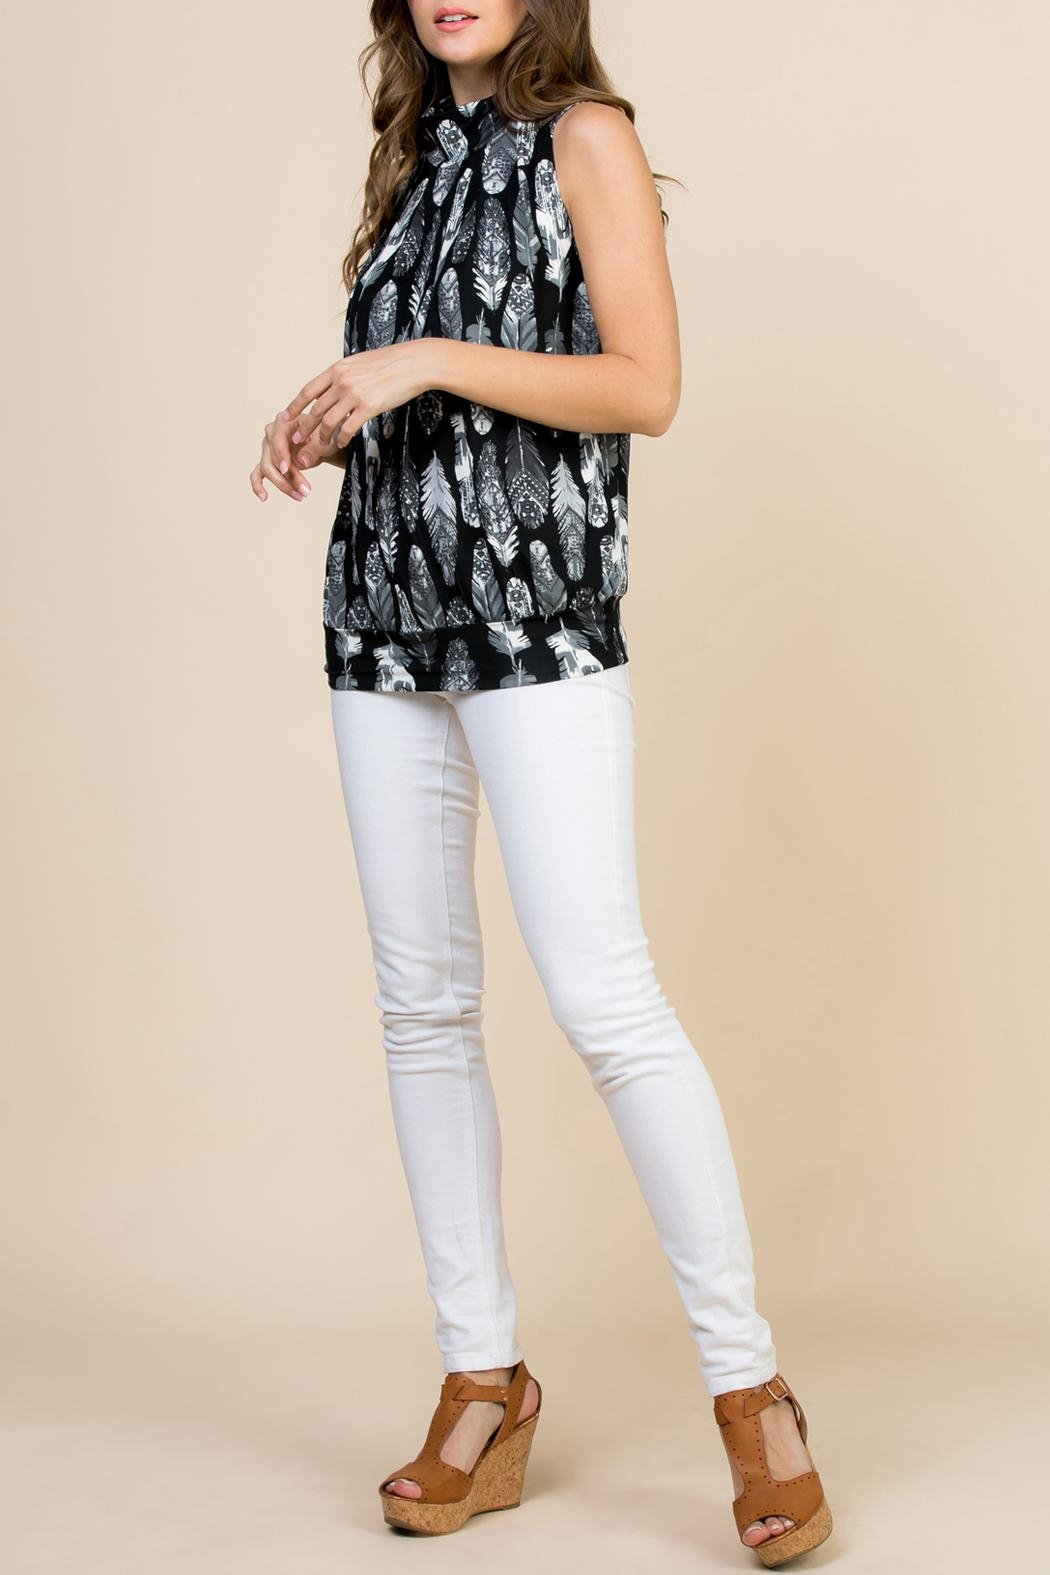 Riah Fashion Feather-Print-Mock-Neck Pleated-Sleeveless-Top - Front Full Image